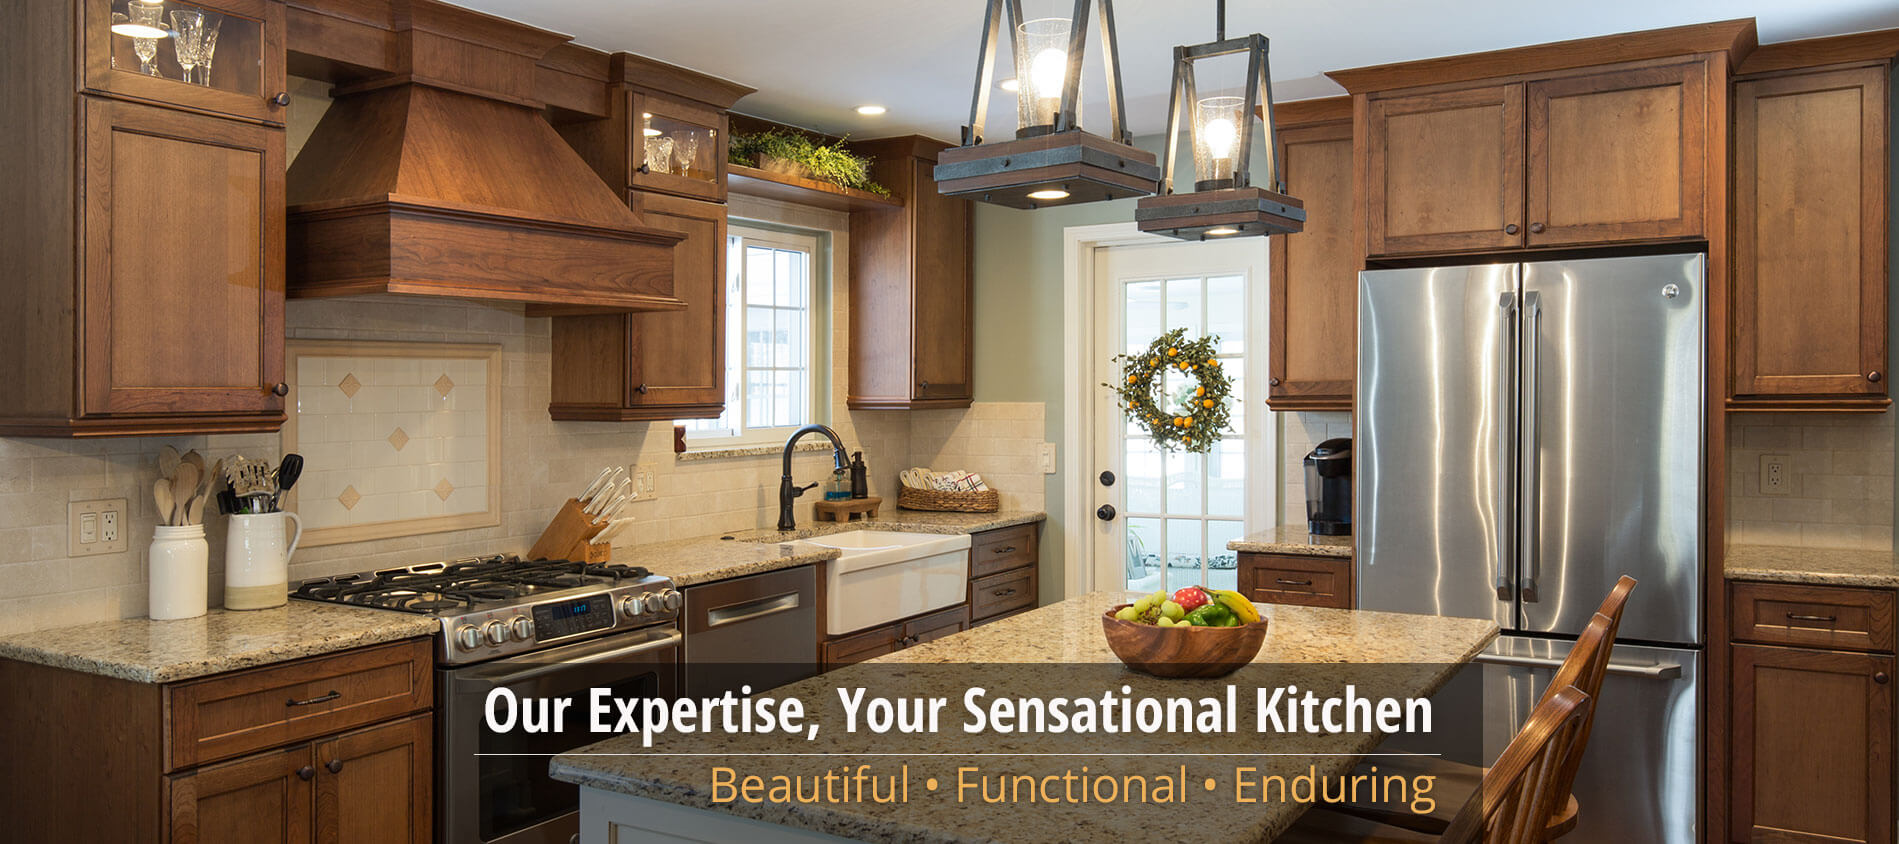 Kitchen with Walnut Cabinets with text reading: Our Expertise, Your Sensational Kitchen; Beautiful